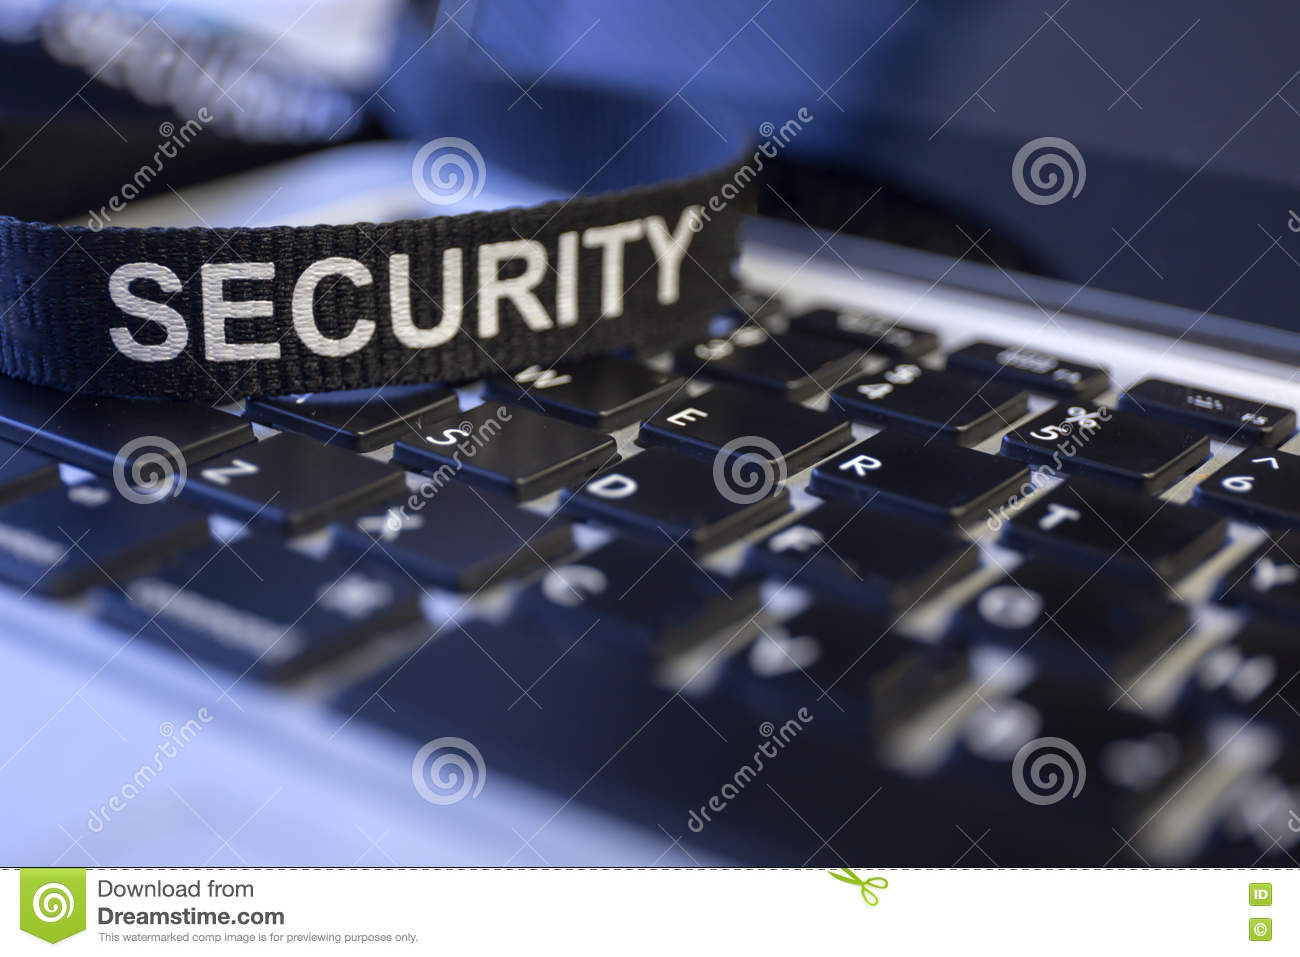 word security on labtop keyboard symbolized cyber crime protection